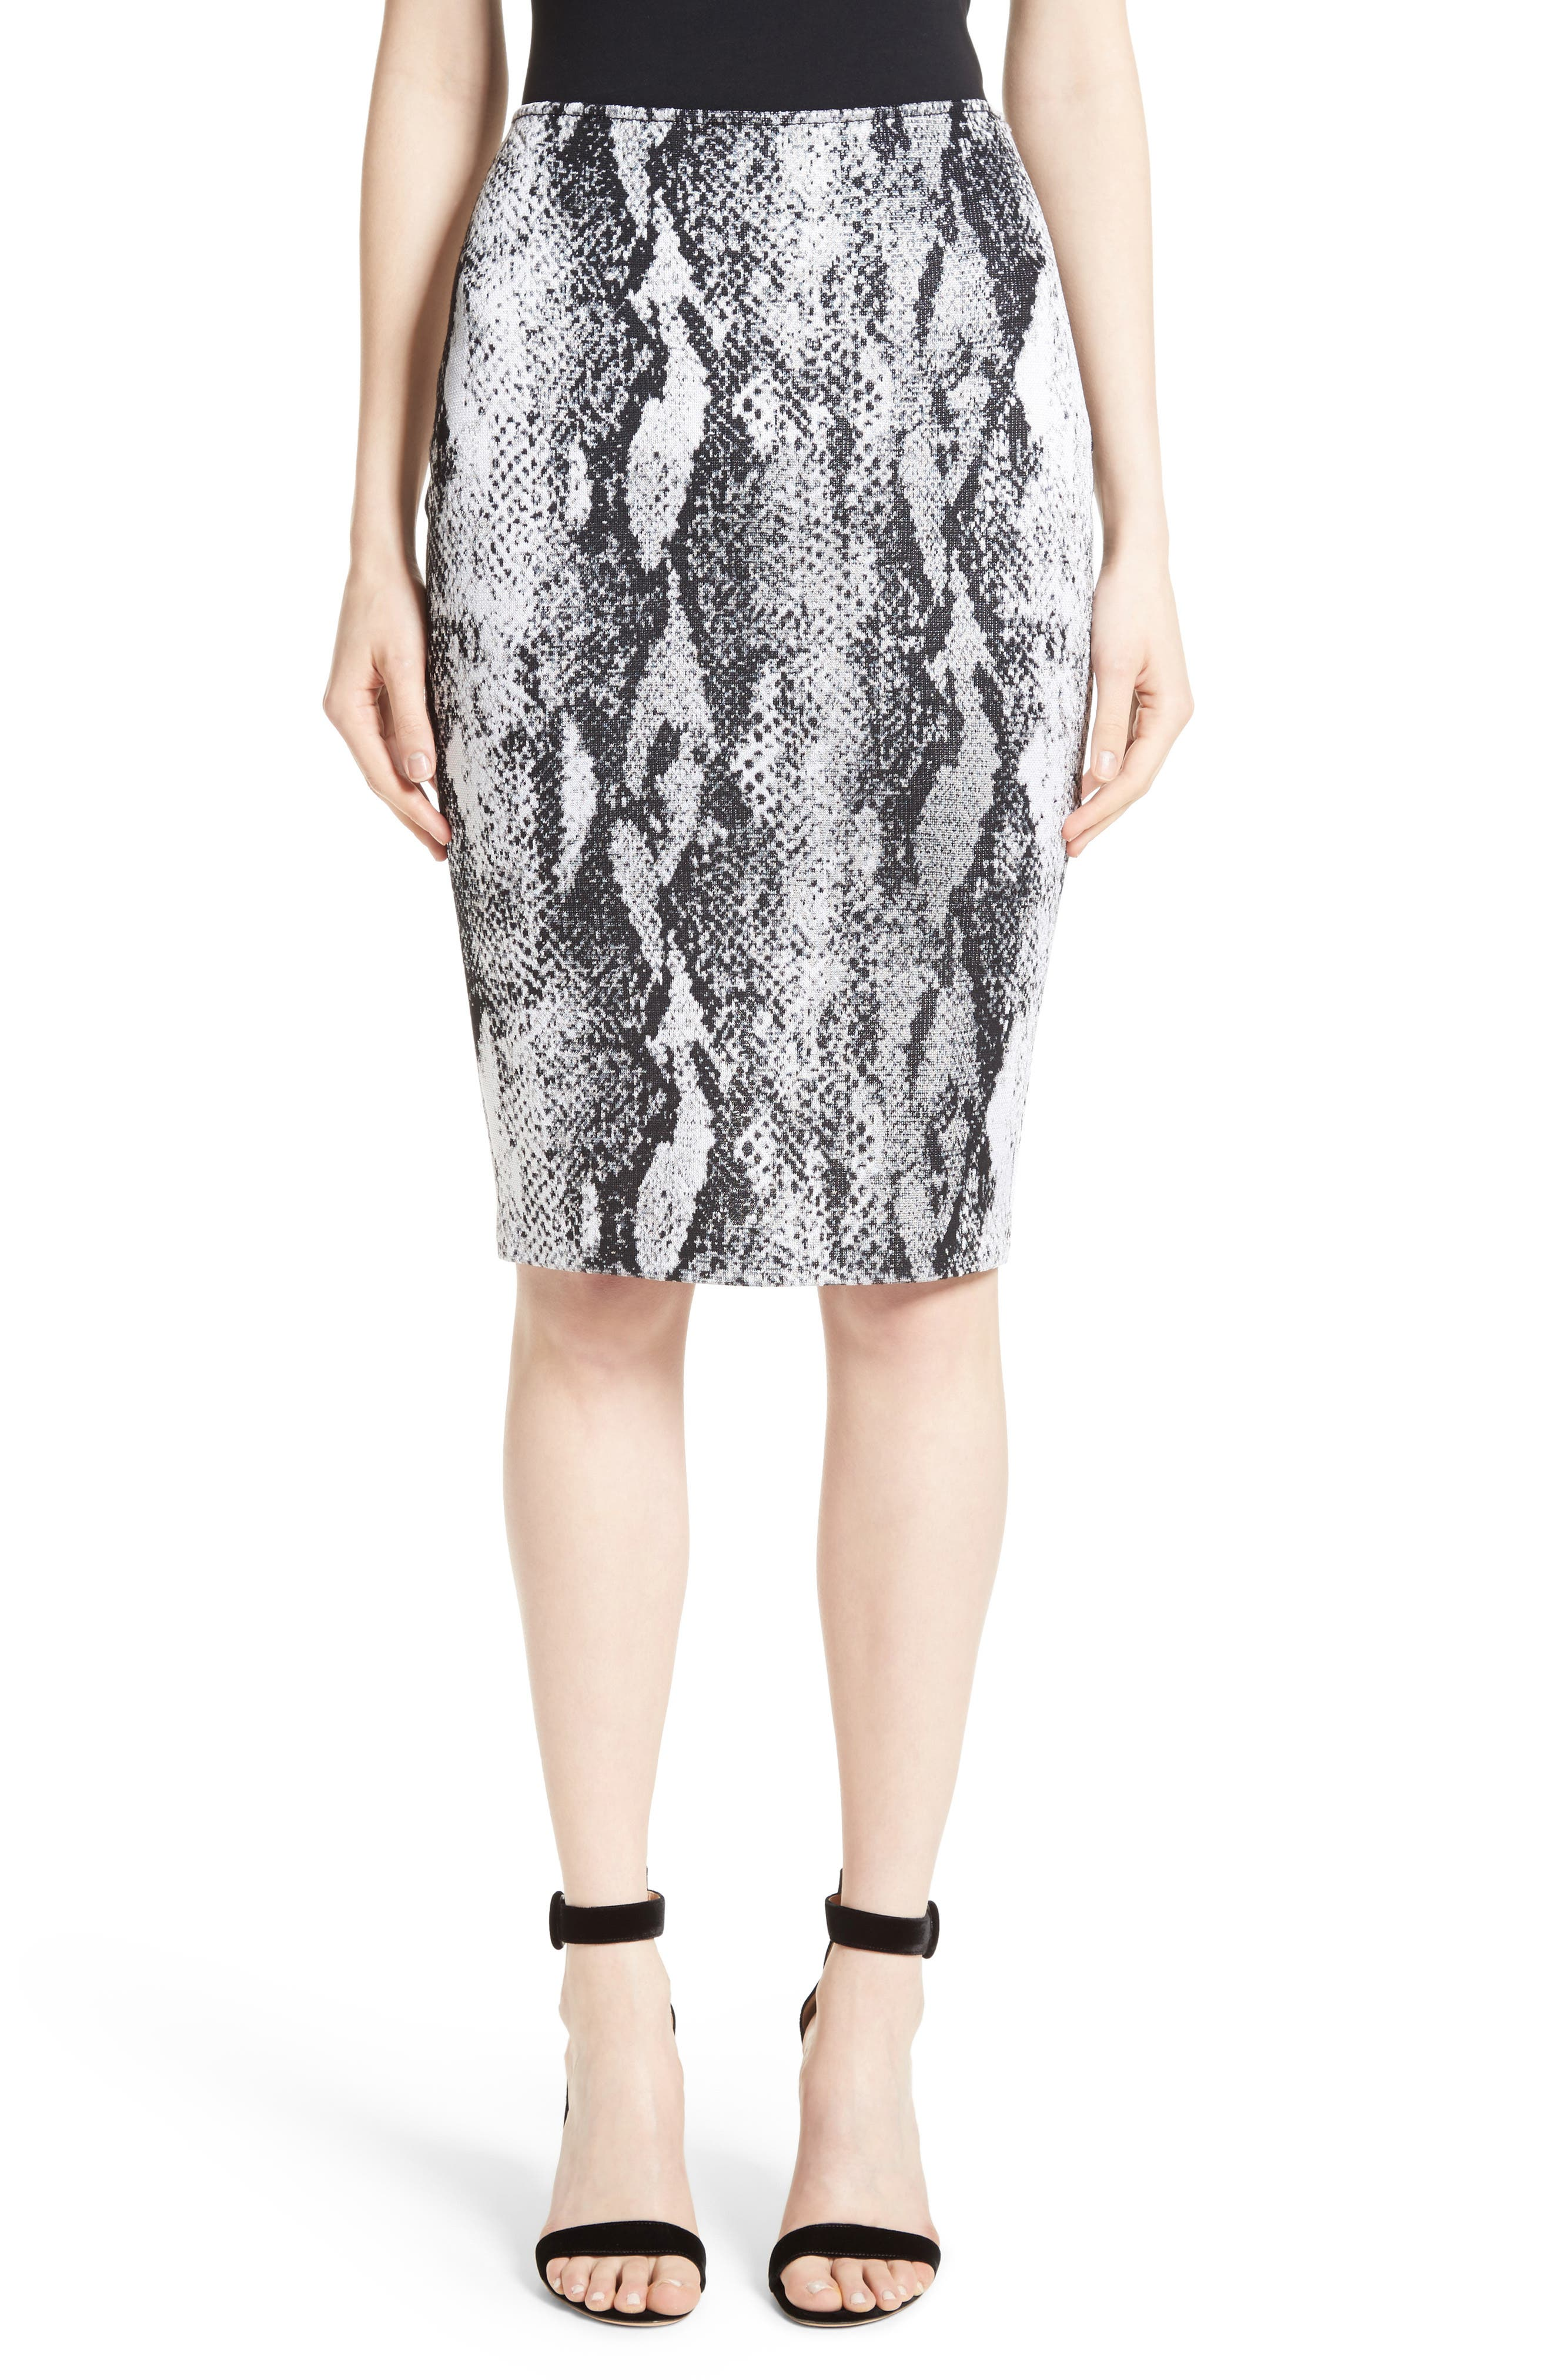 Raja Snakeskin Knit Pencil Skirt,                         Main,                         color, 050